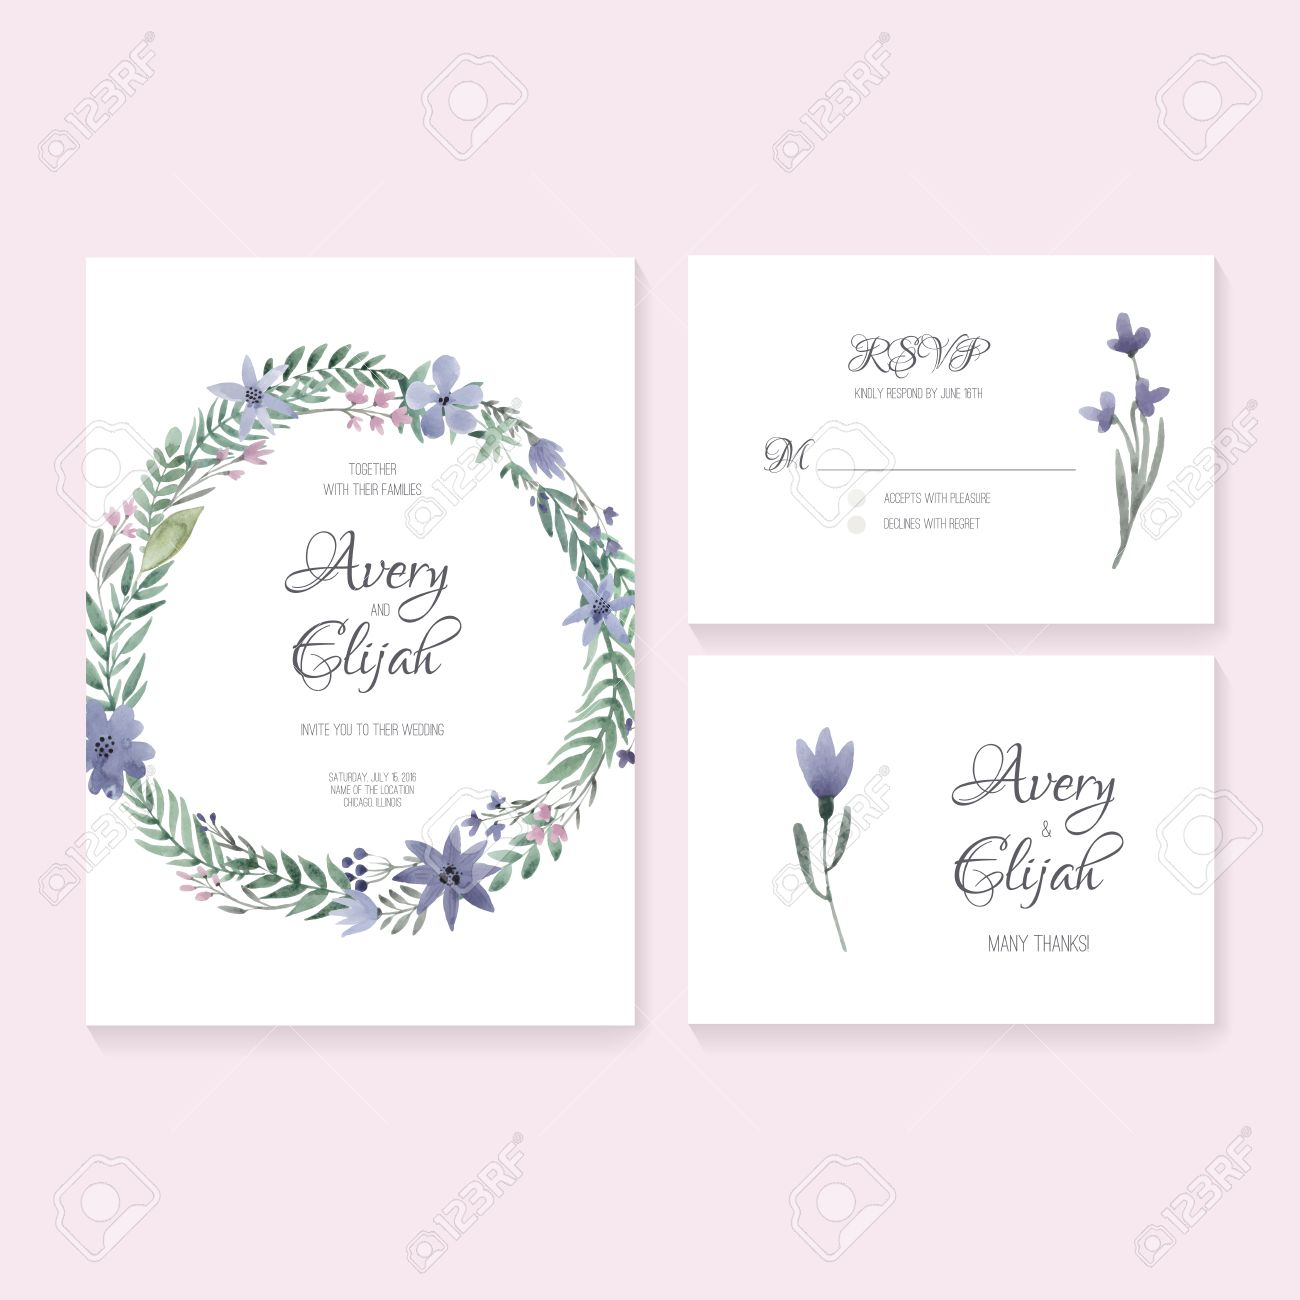 Unique Gentle Vector Wedding Cards Template With Watercolor. Wedding  Invitation Or Save The Date,